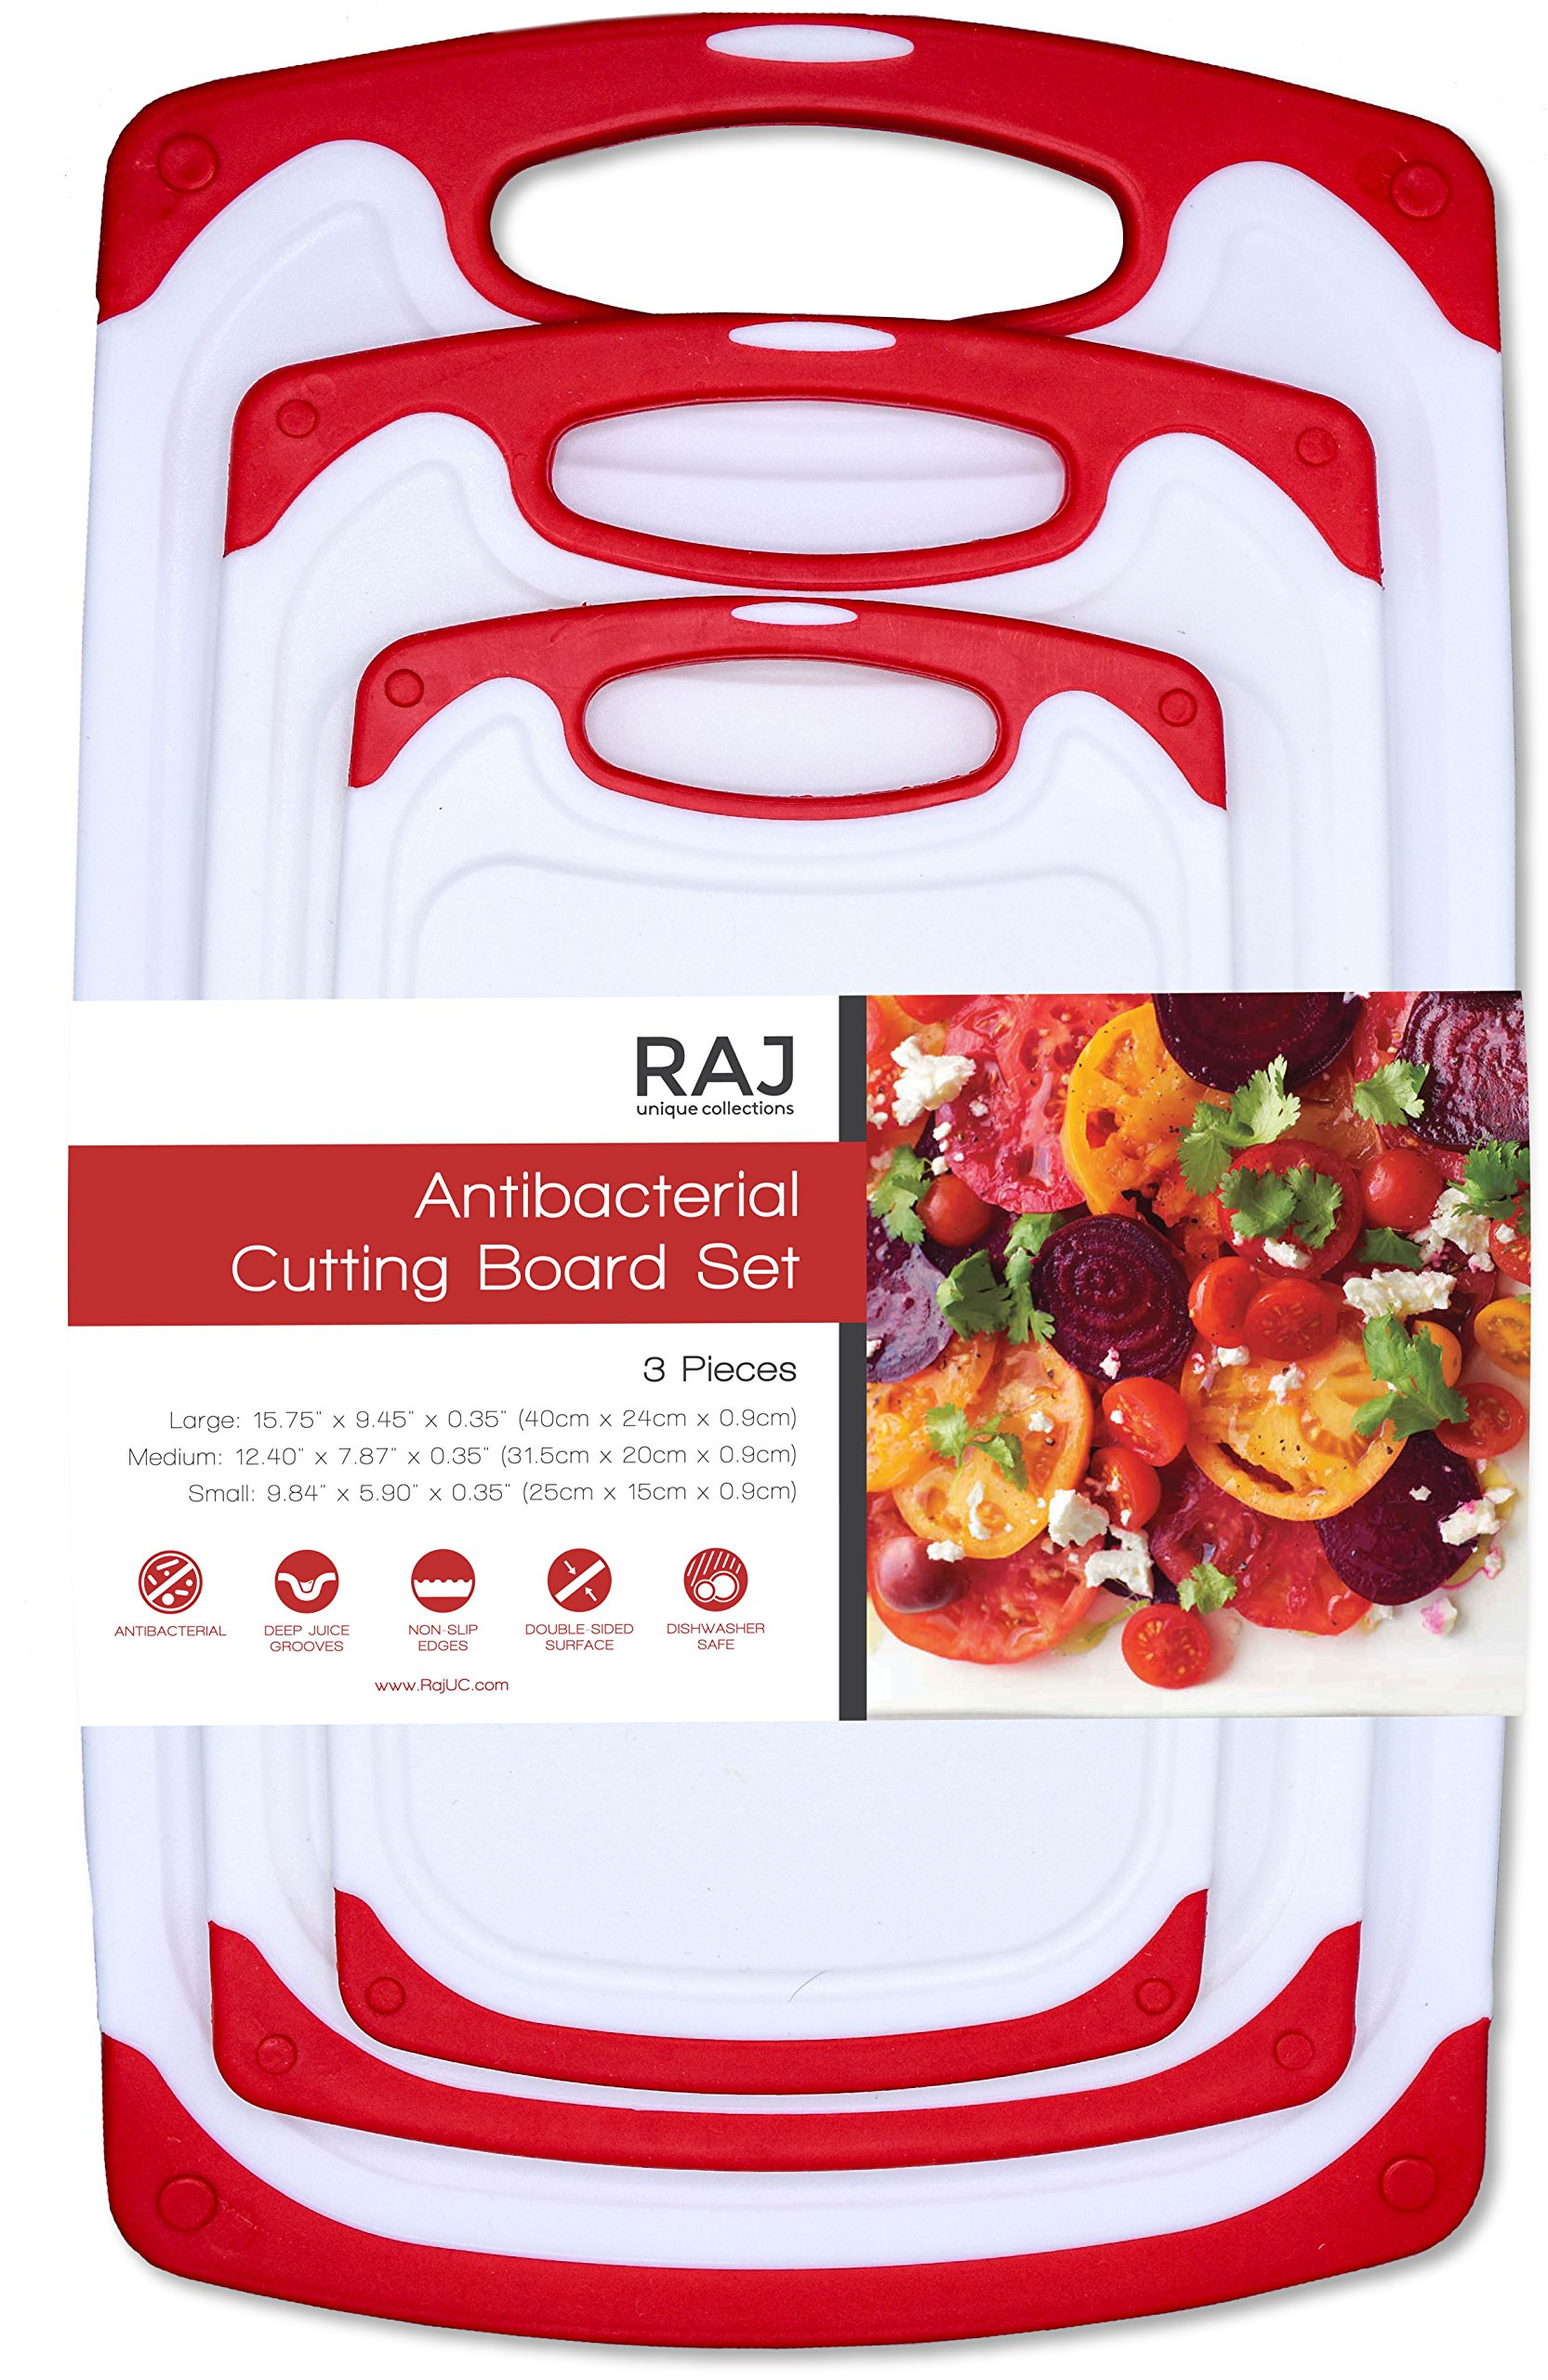 Raj Non-Slip Antibacterial Plastic Cutting Board, Deep Juice Groove, Dishwasher Safe, BPA Free, FDA Approved White and green (3 Pieces, White board with Red Ends)